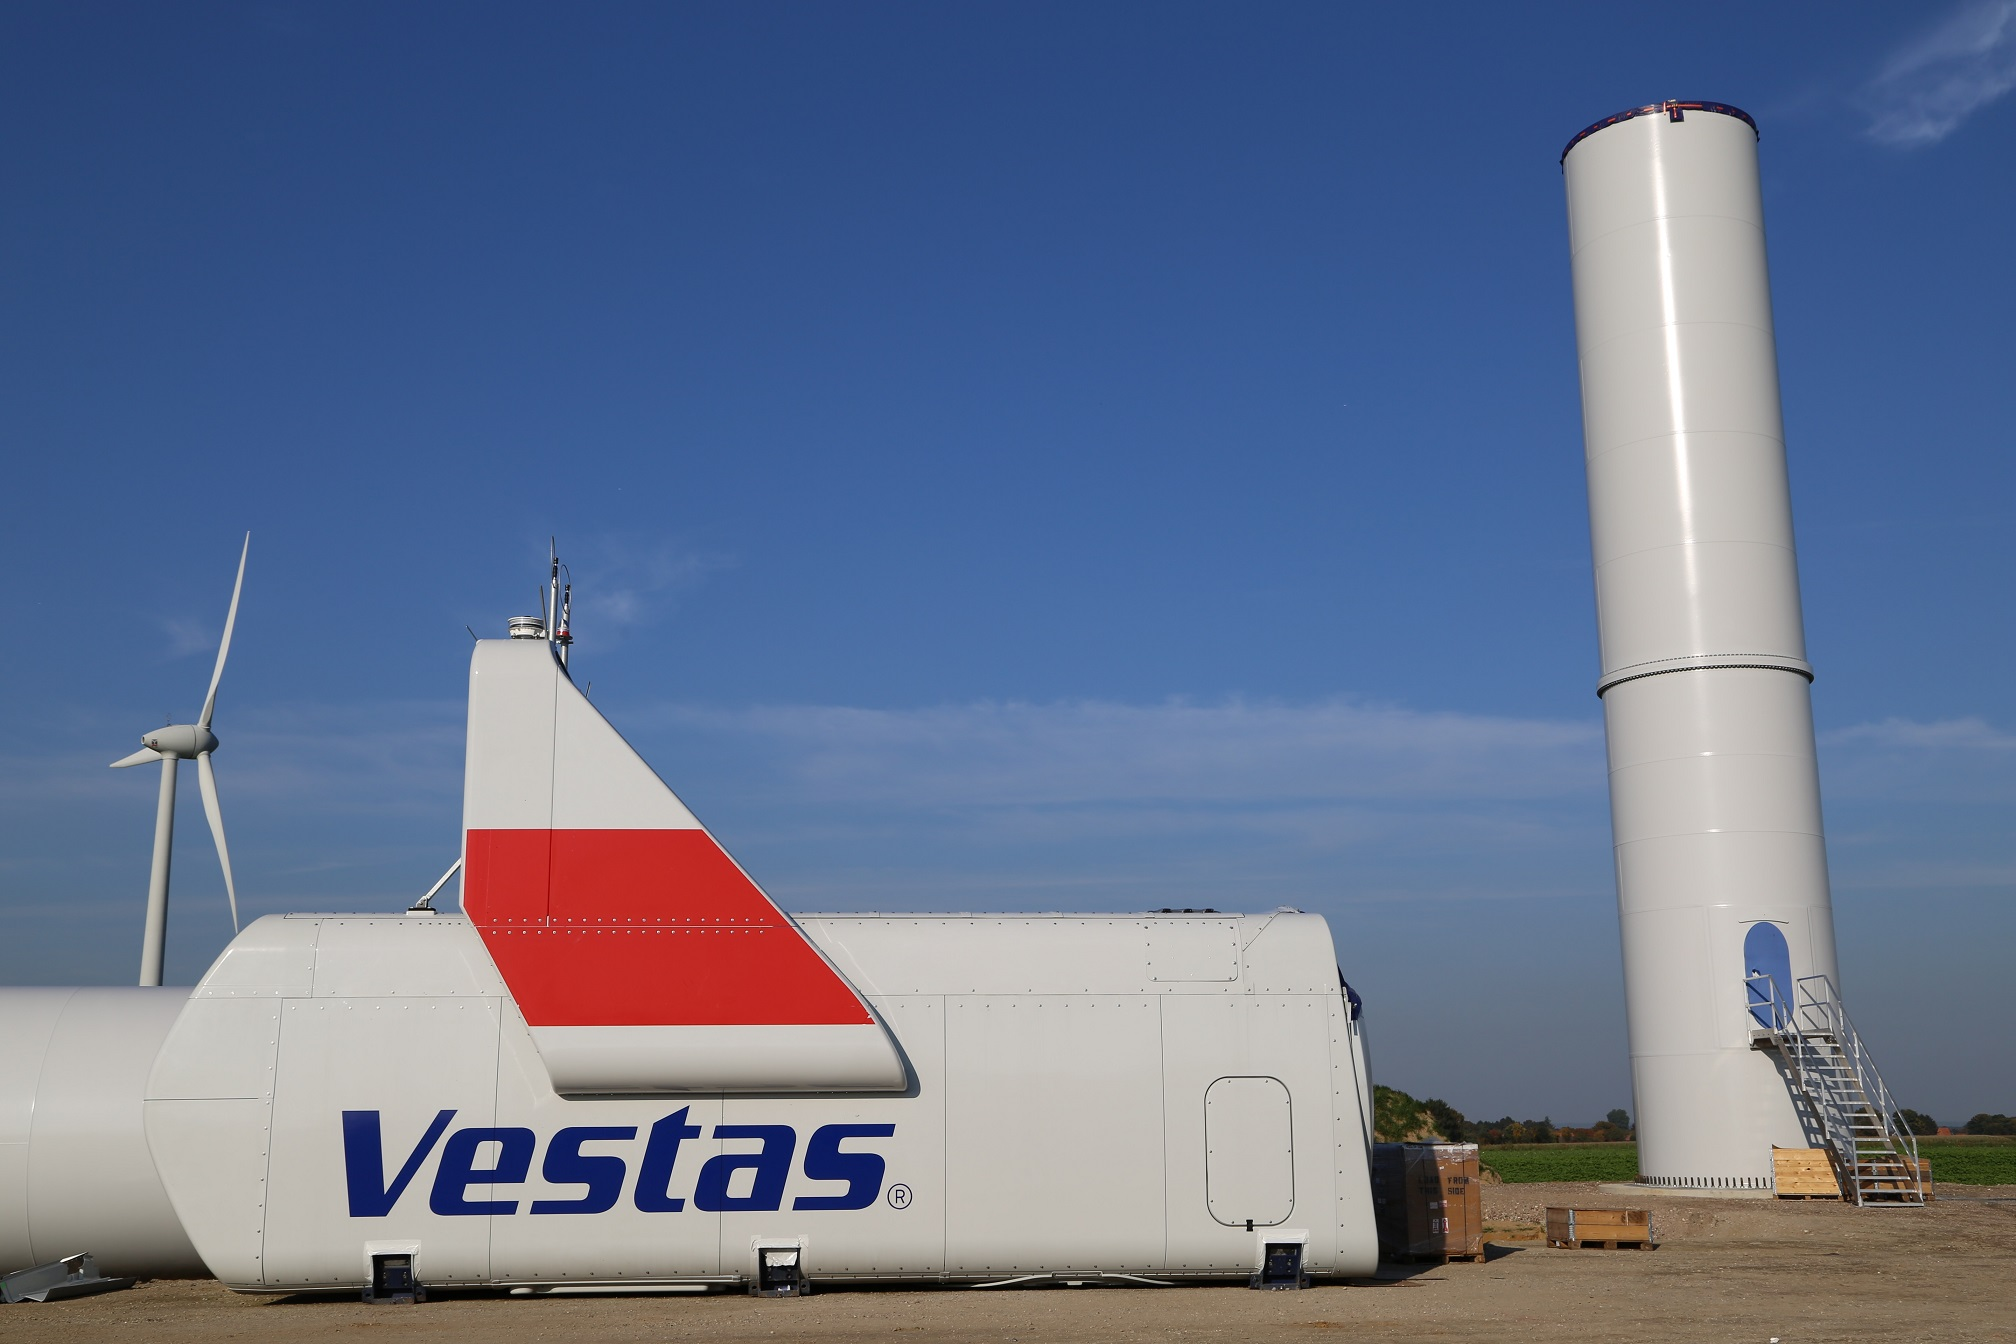 vestas v 112 onshore kw turbine. Black Bedroom Furniture Sets. Home Design Ideas